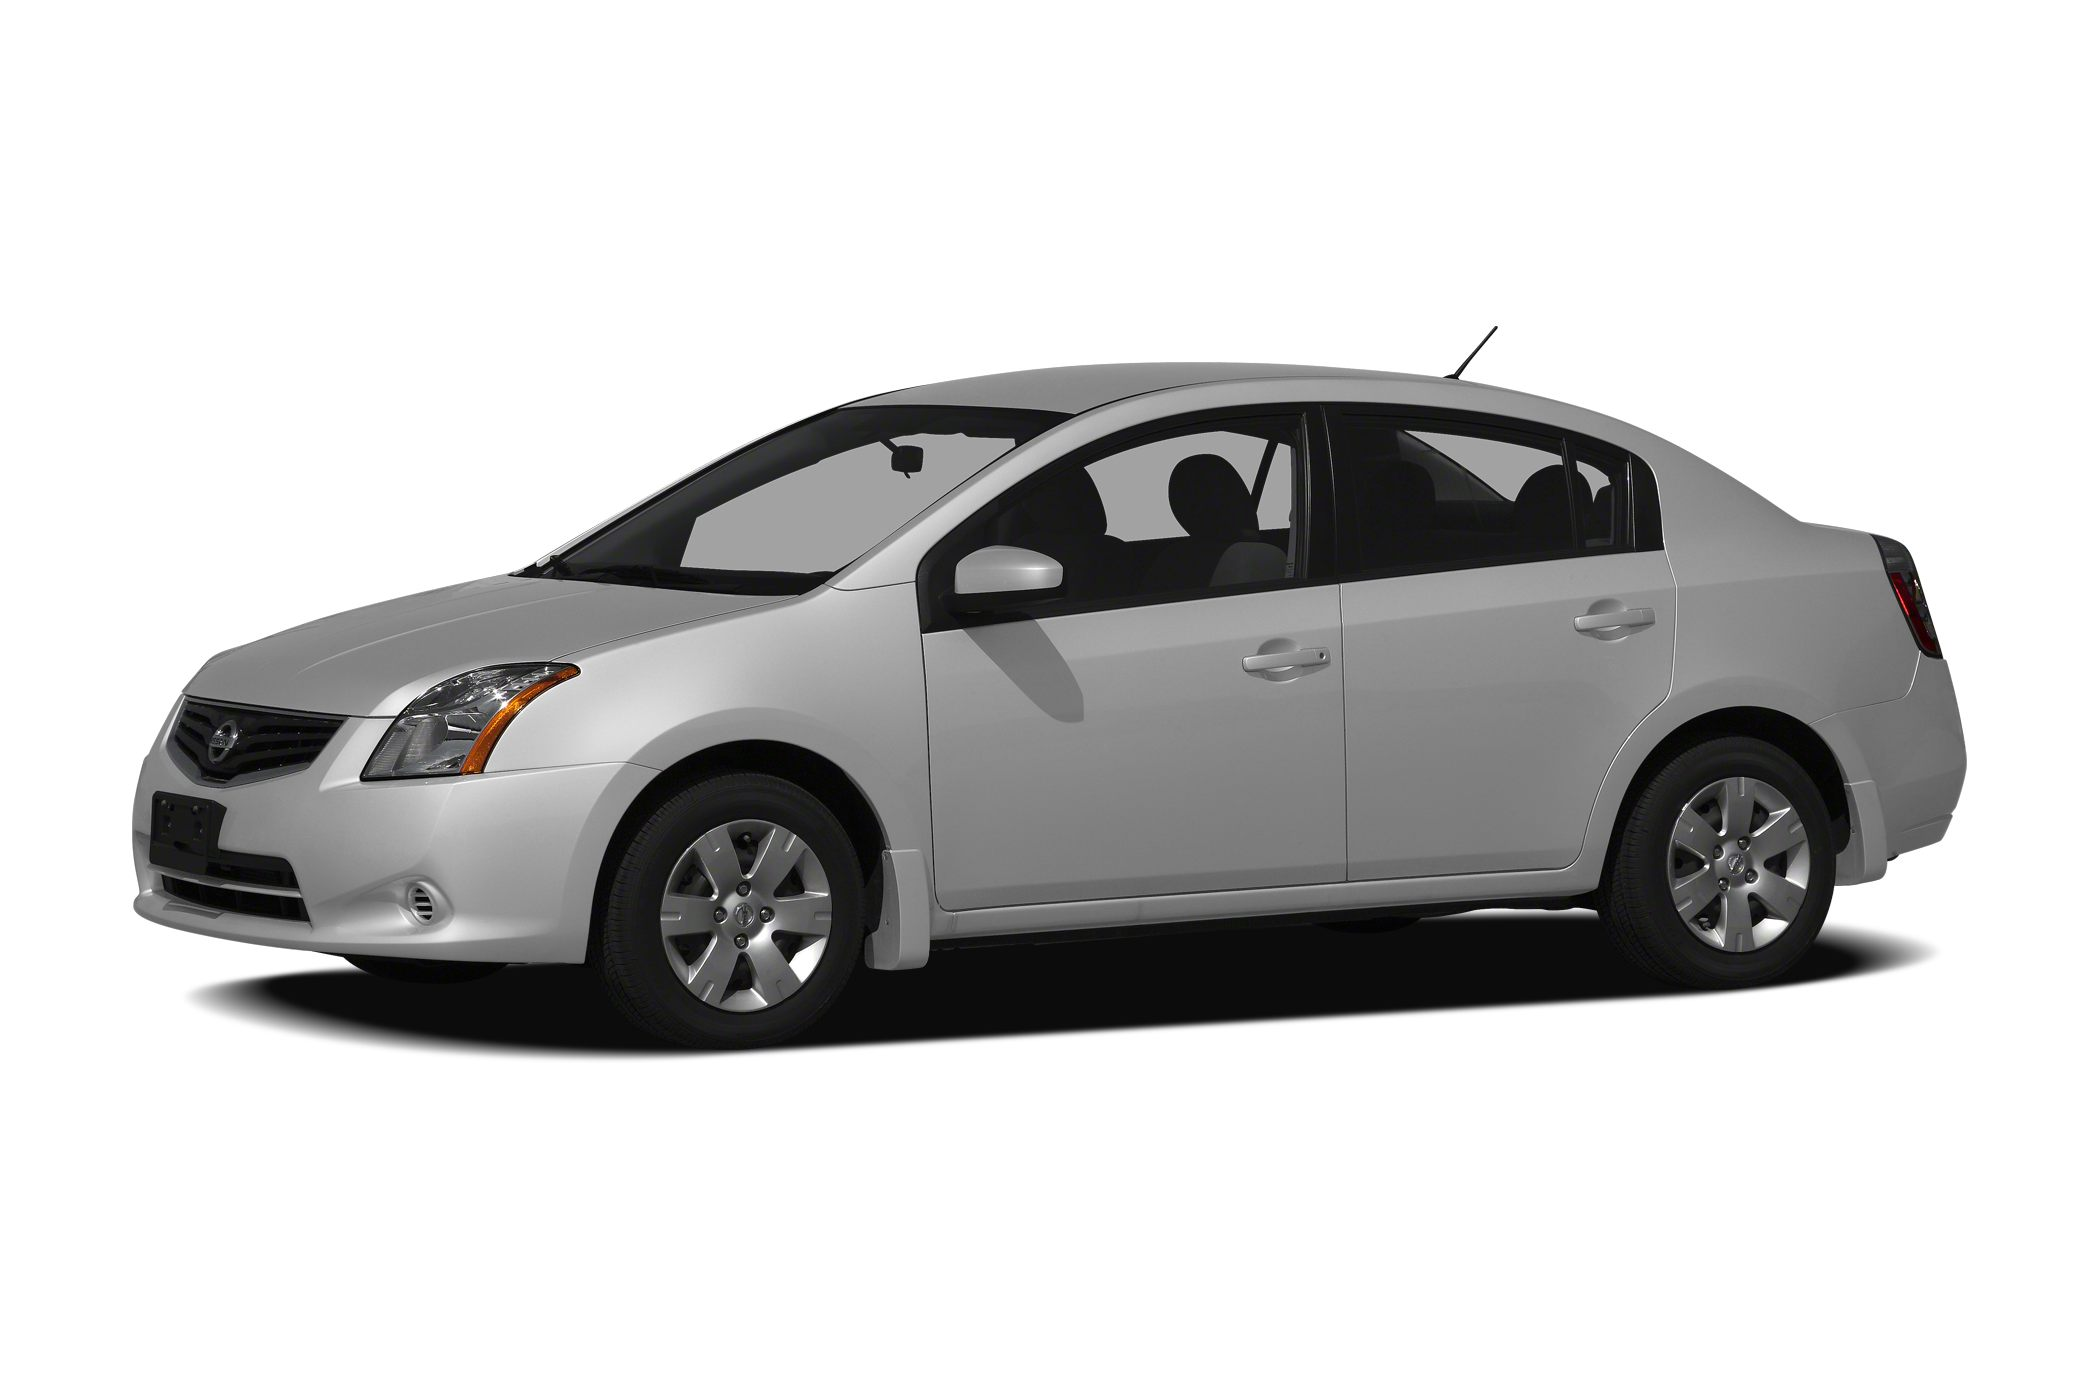 2011 Nissan Sentra 2.0 SR Sedan for sale in Roanoke for $8,995 with 54,521 miles